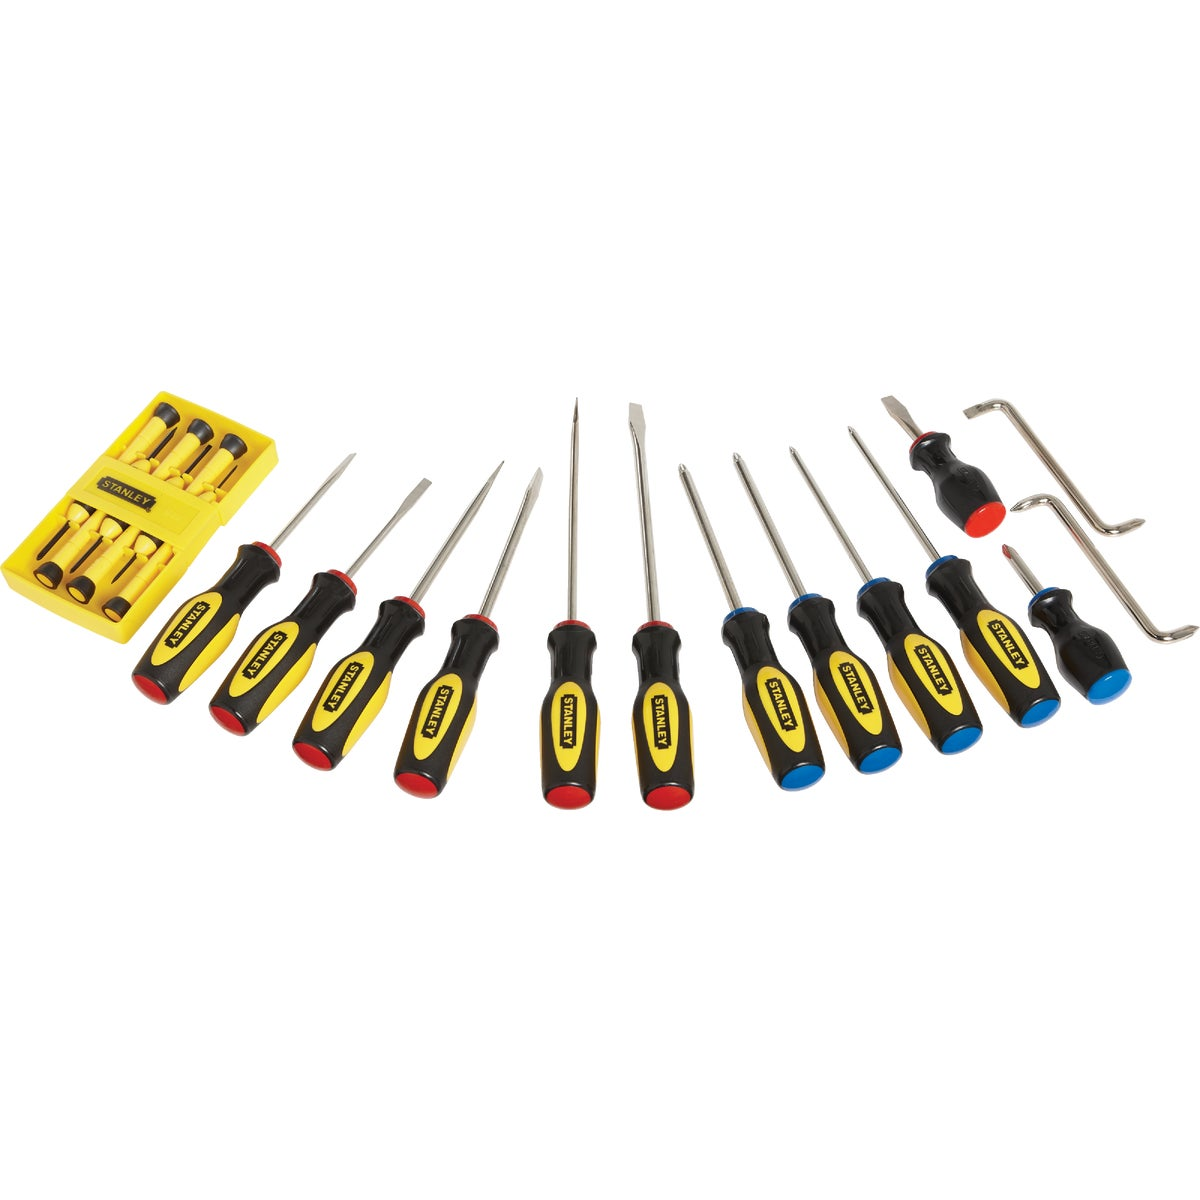 20PC SCREWDRIVER SET - 60-220 by Stanley Tools